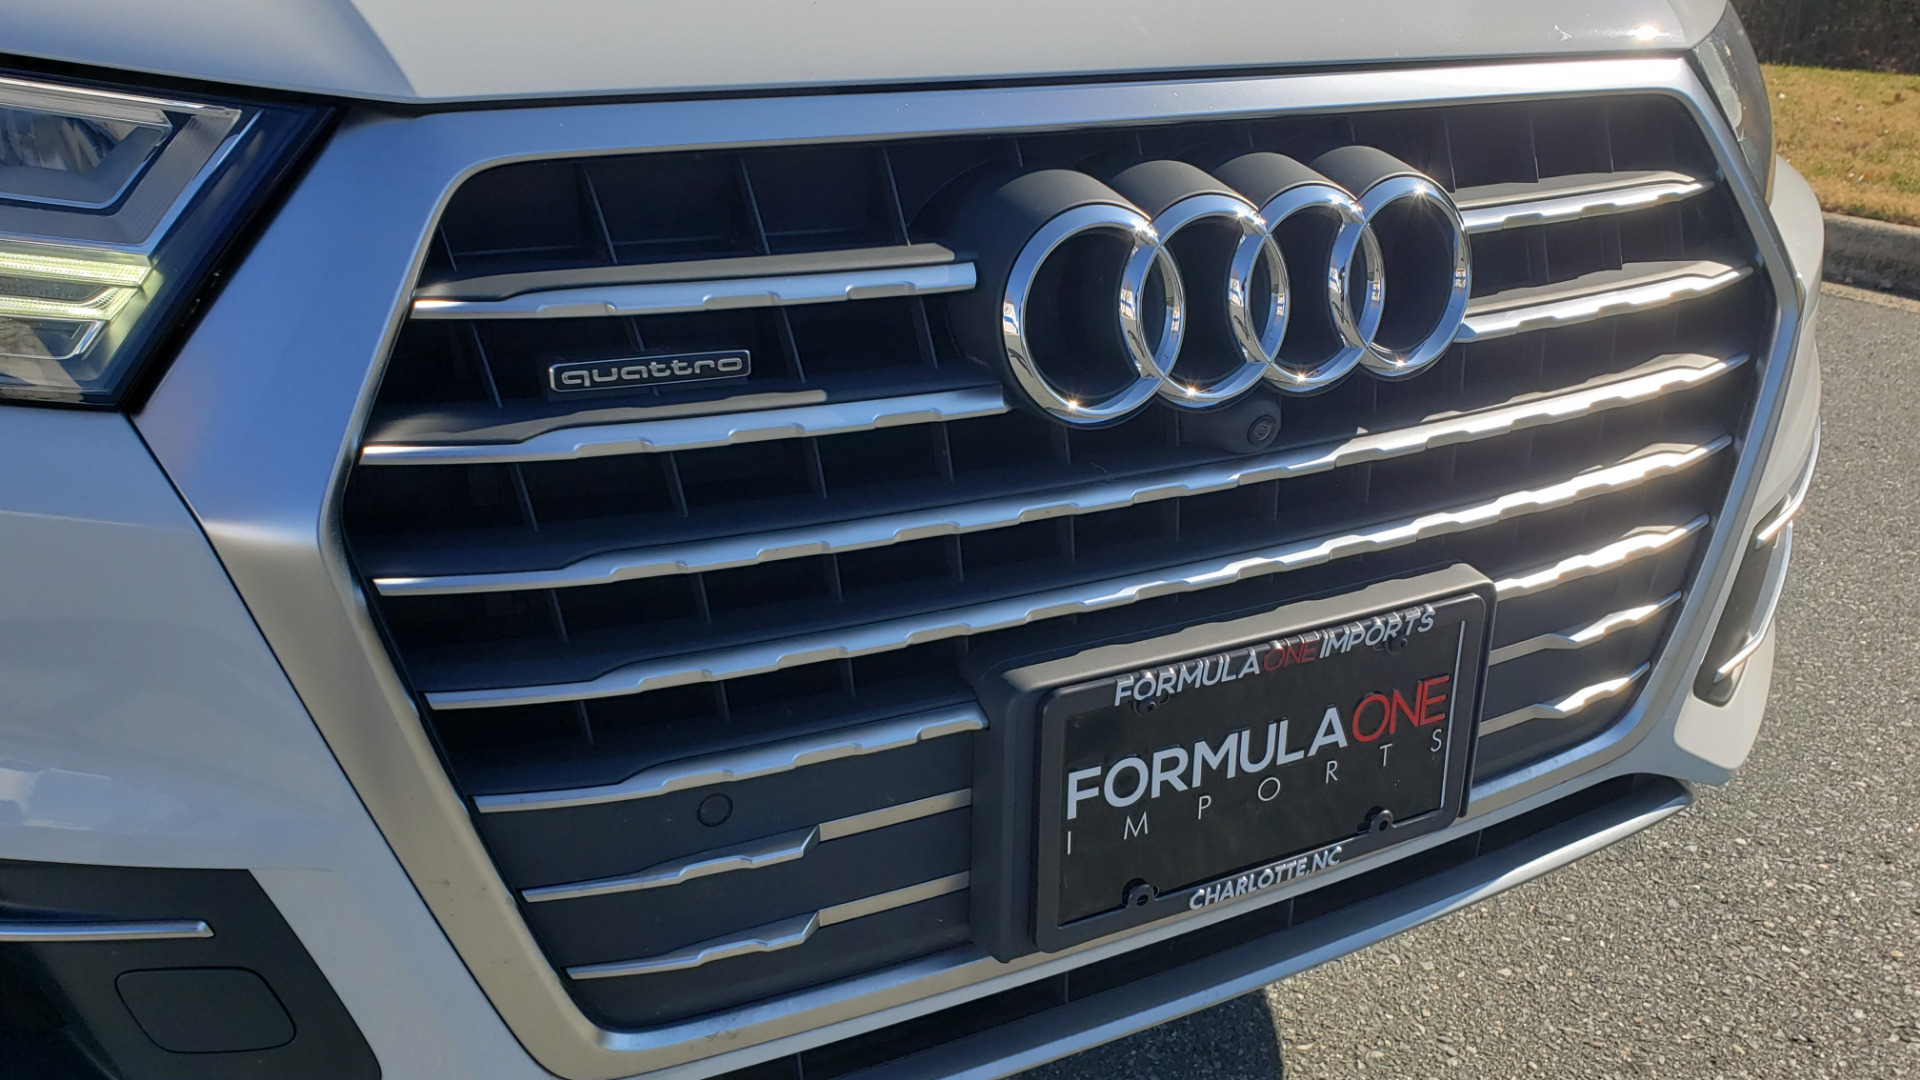 Used 2017 Audi Q7 PRESTIGE 3.0T / NAV / CLD WTHR / SUNROOF / REARVIEW for sale Sold at Formula Imports in Charlotte NC 28227 22